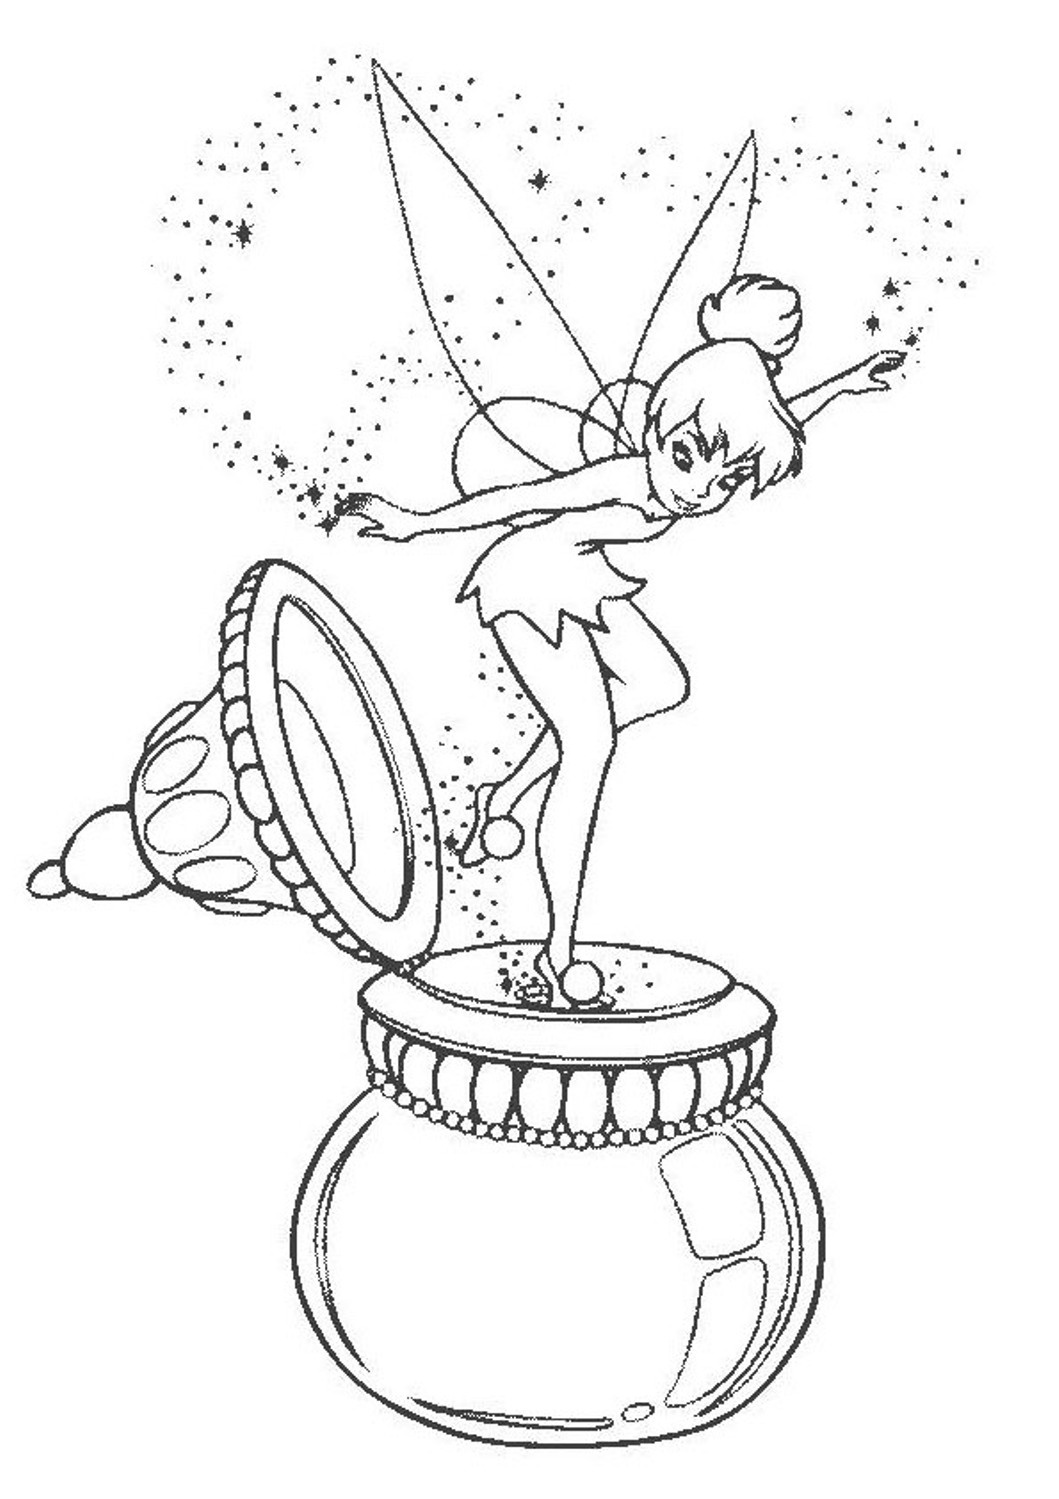 tinkerbell colouring in tinkerbell coloring pages to print coloring pages tinkerbell colouring in